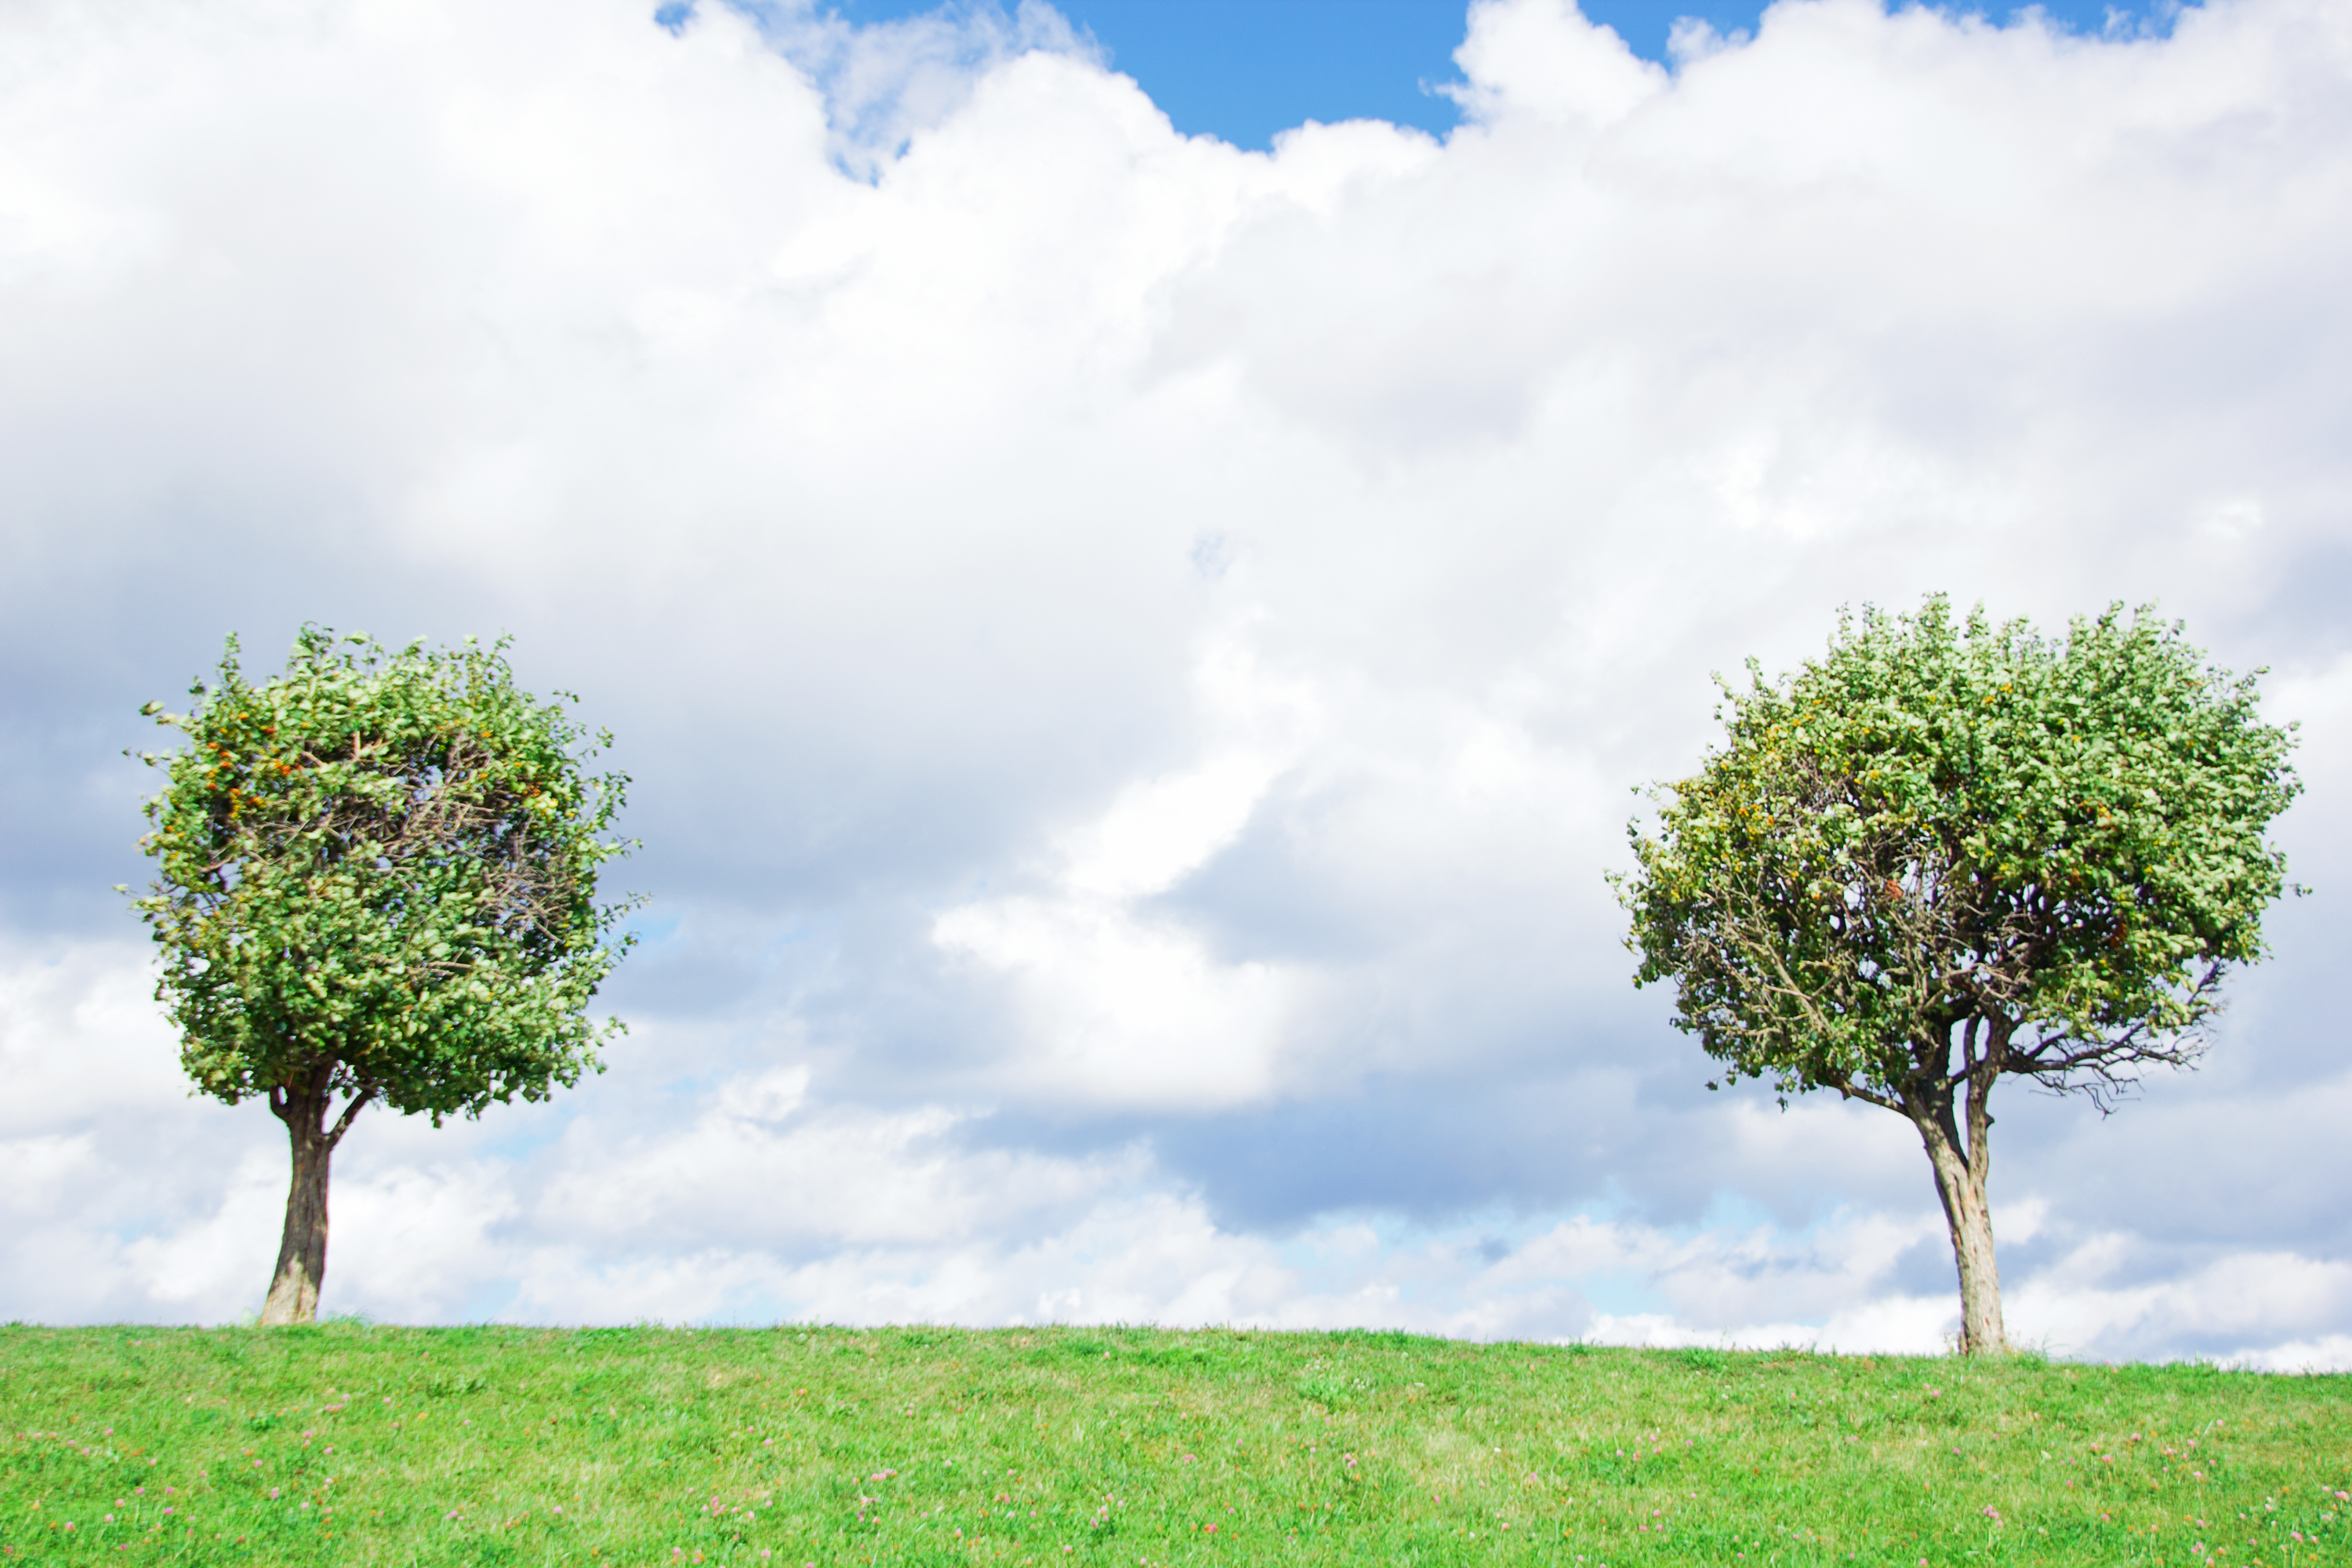 Trees, Branches, Couple, Leaf, Sky, HQ Photo